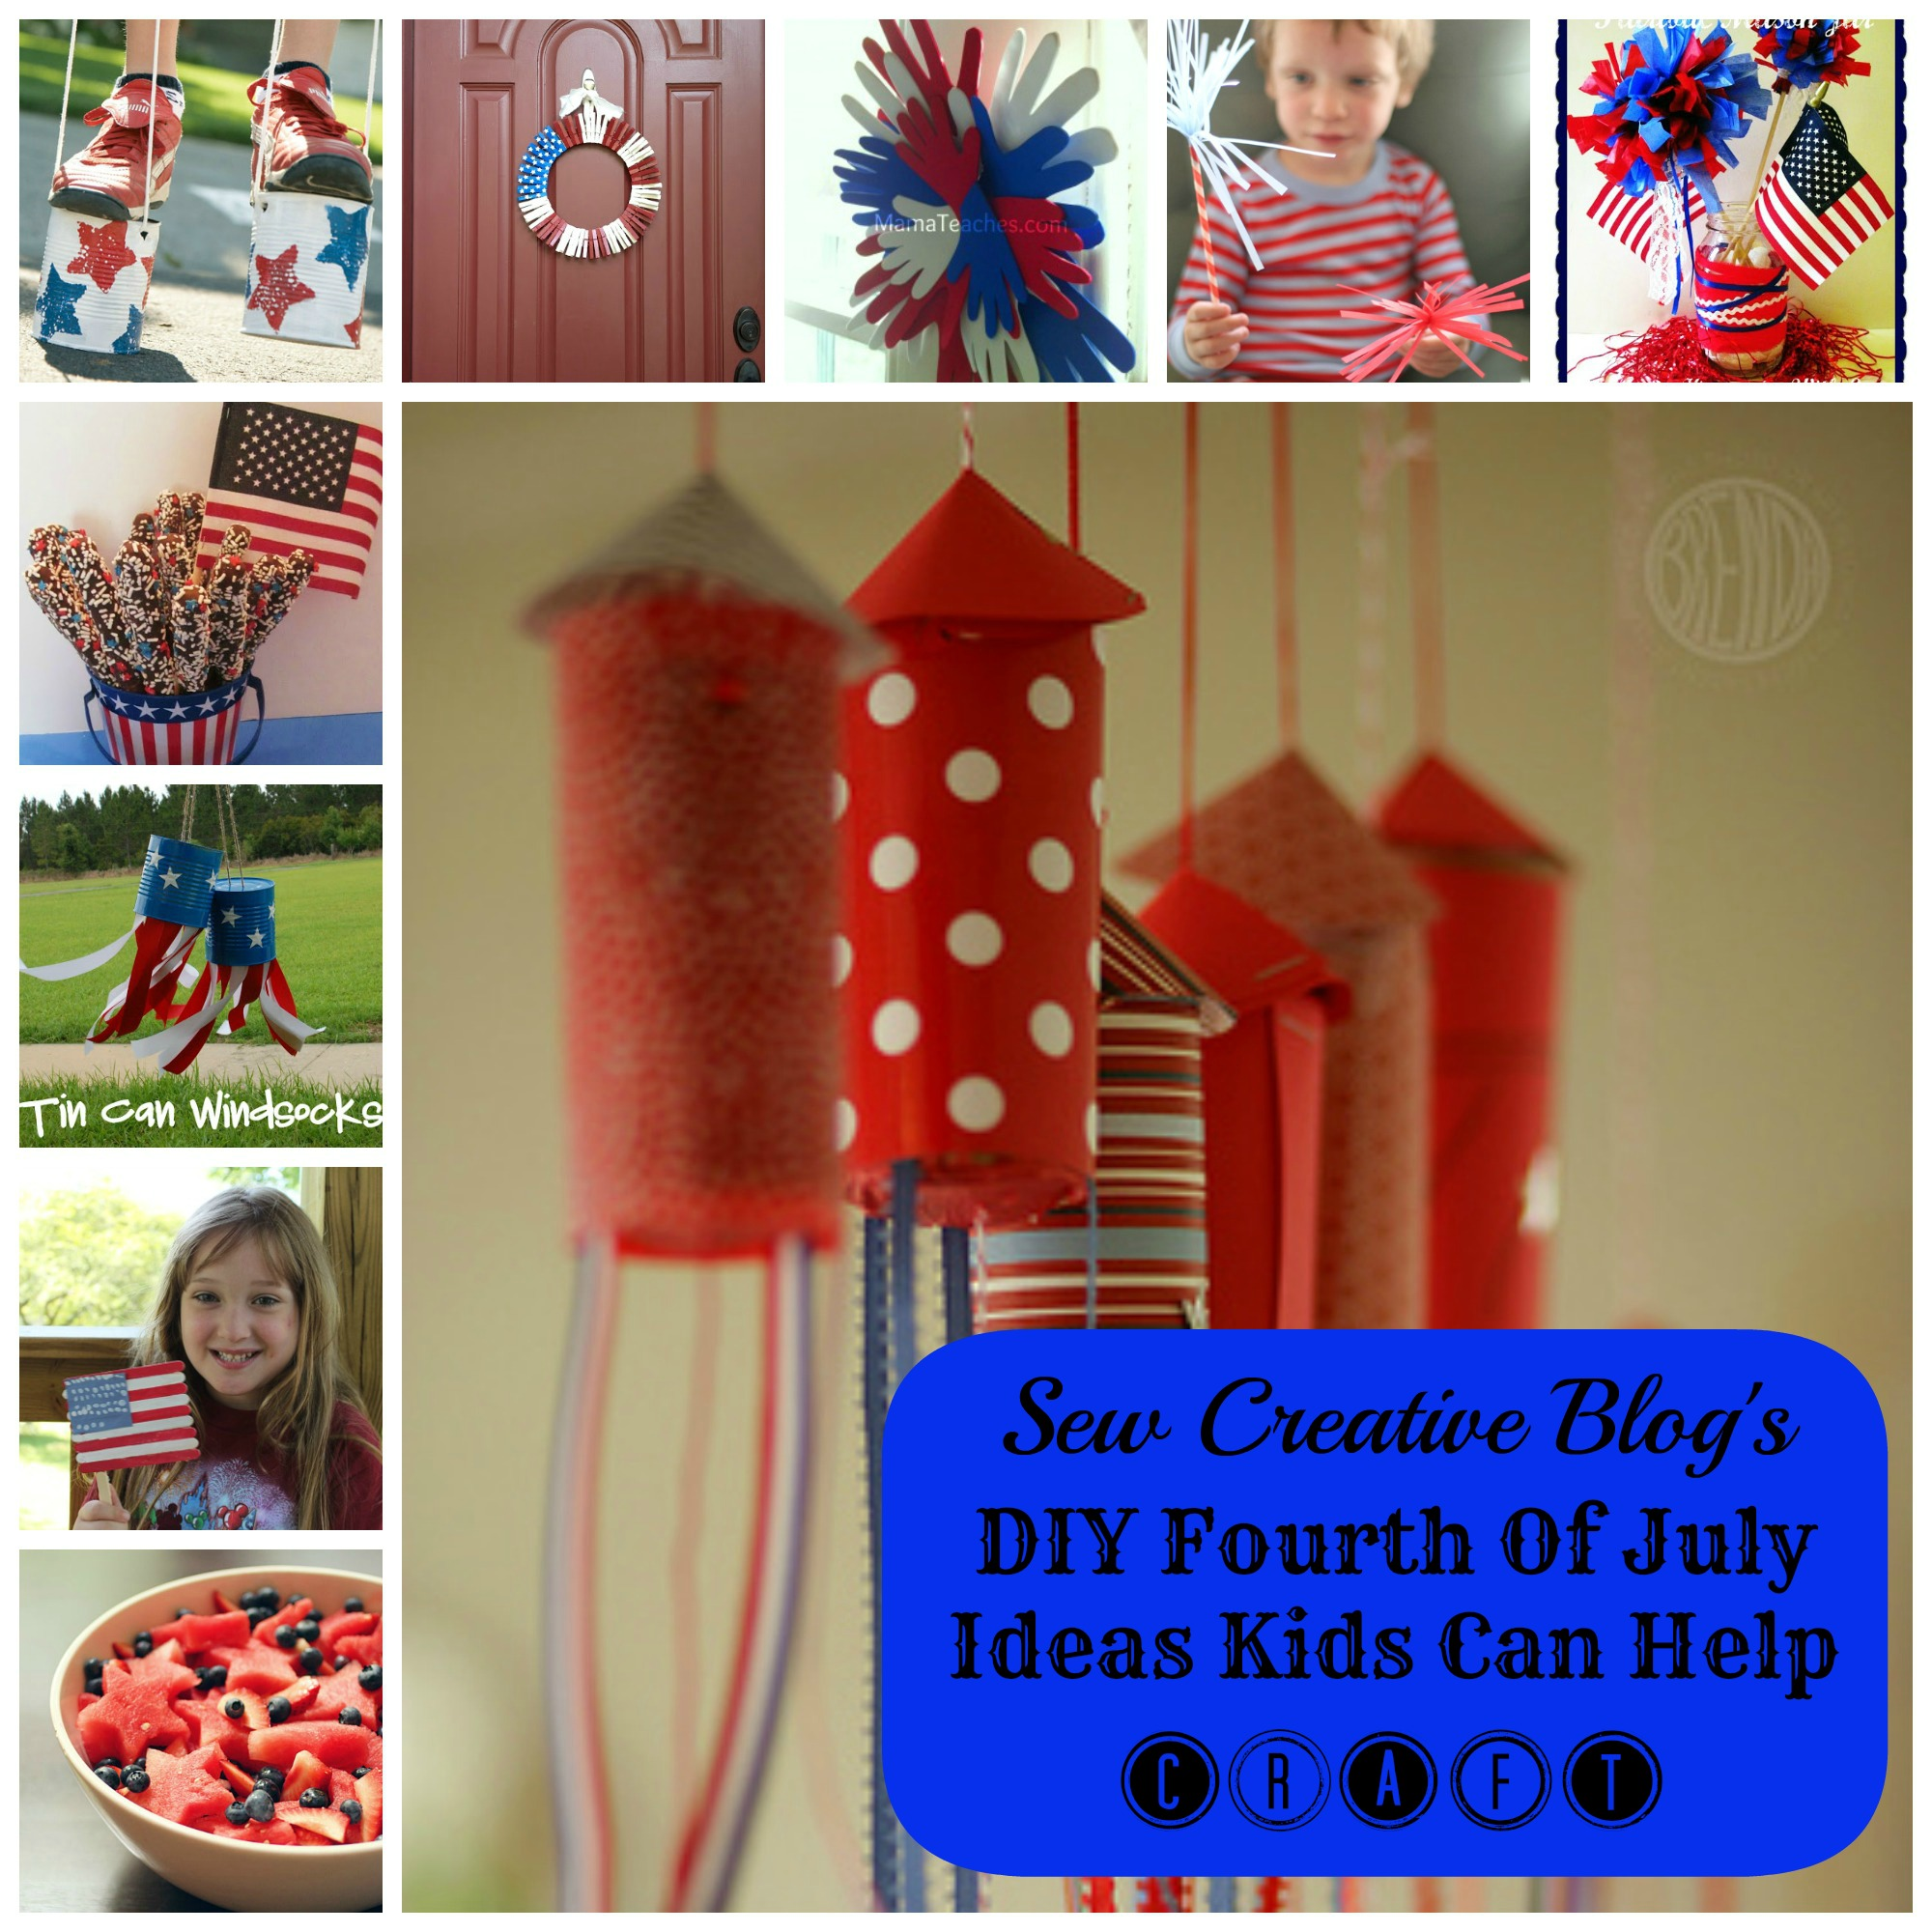 Sew Creative Blog's DIY Fourth Of July Ideas Kids Can Help Craft